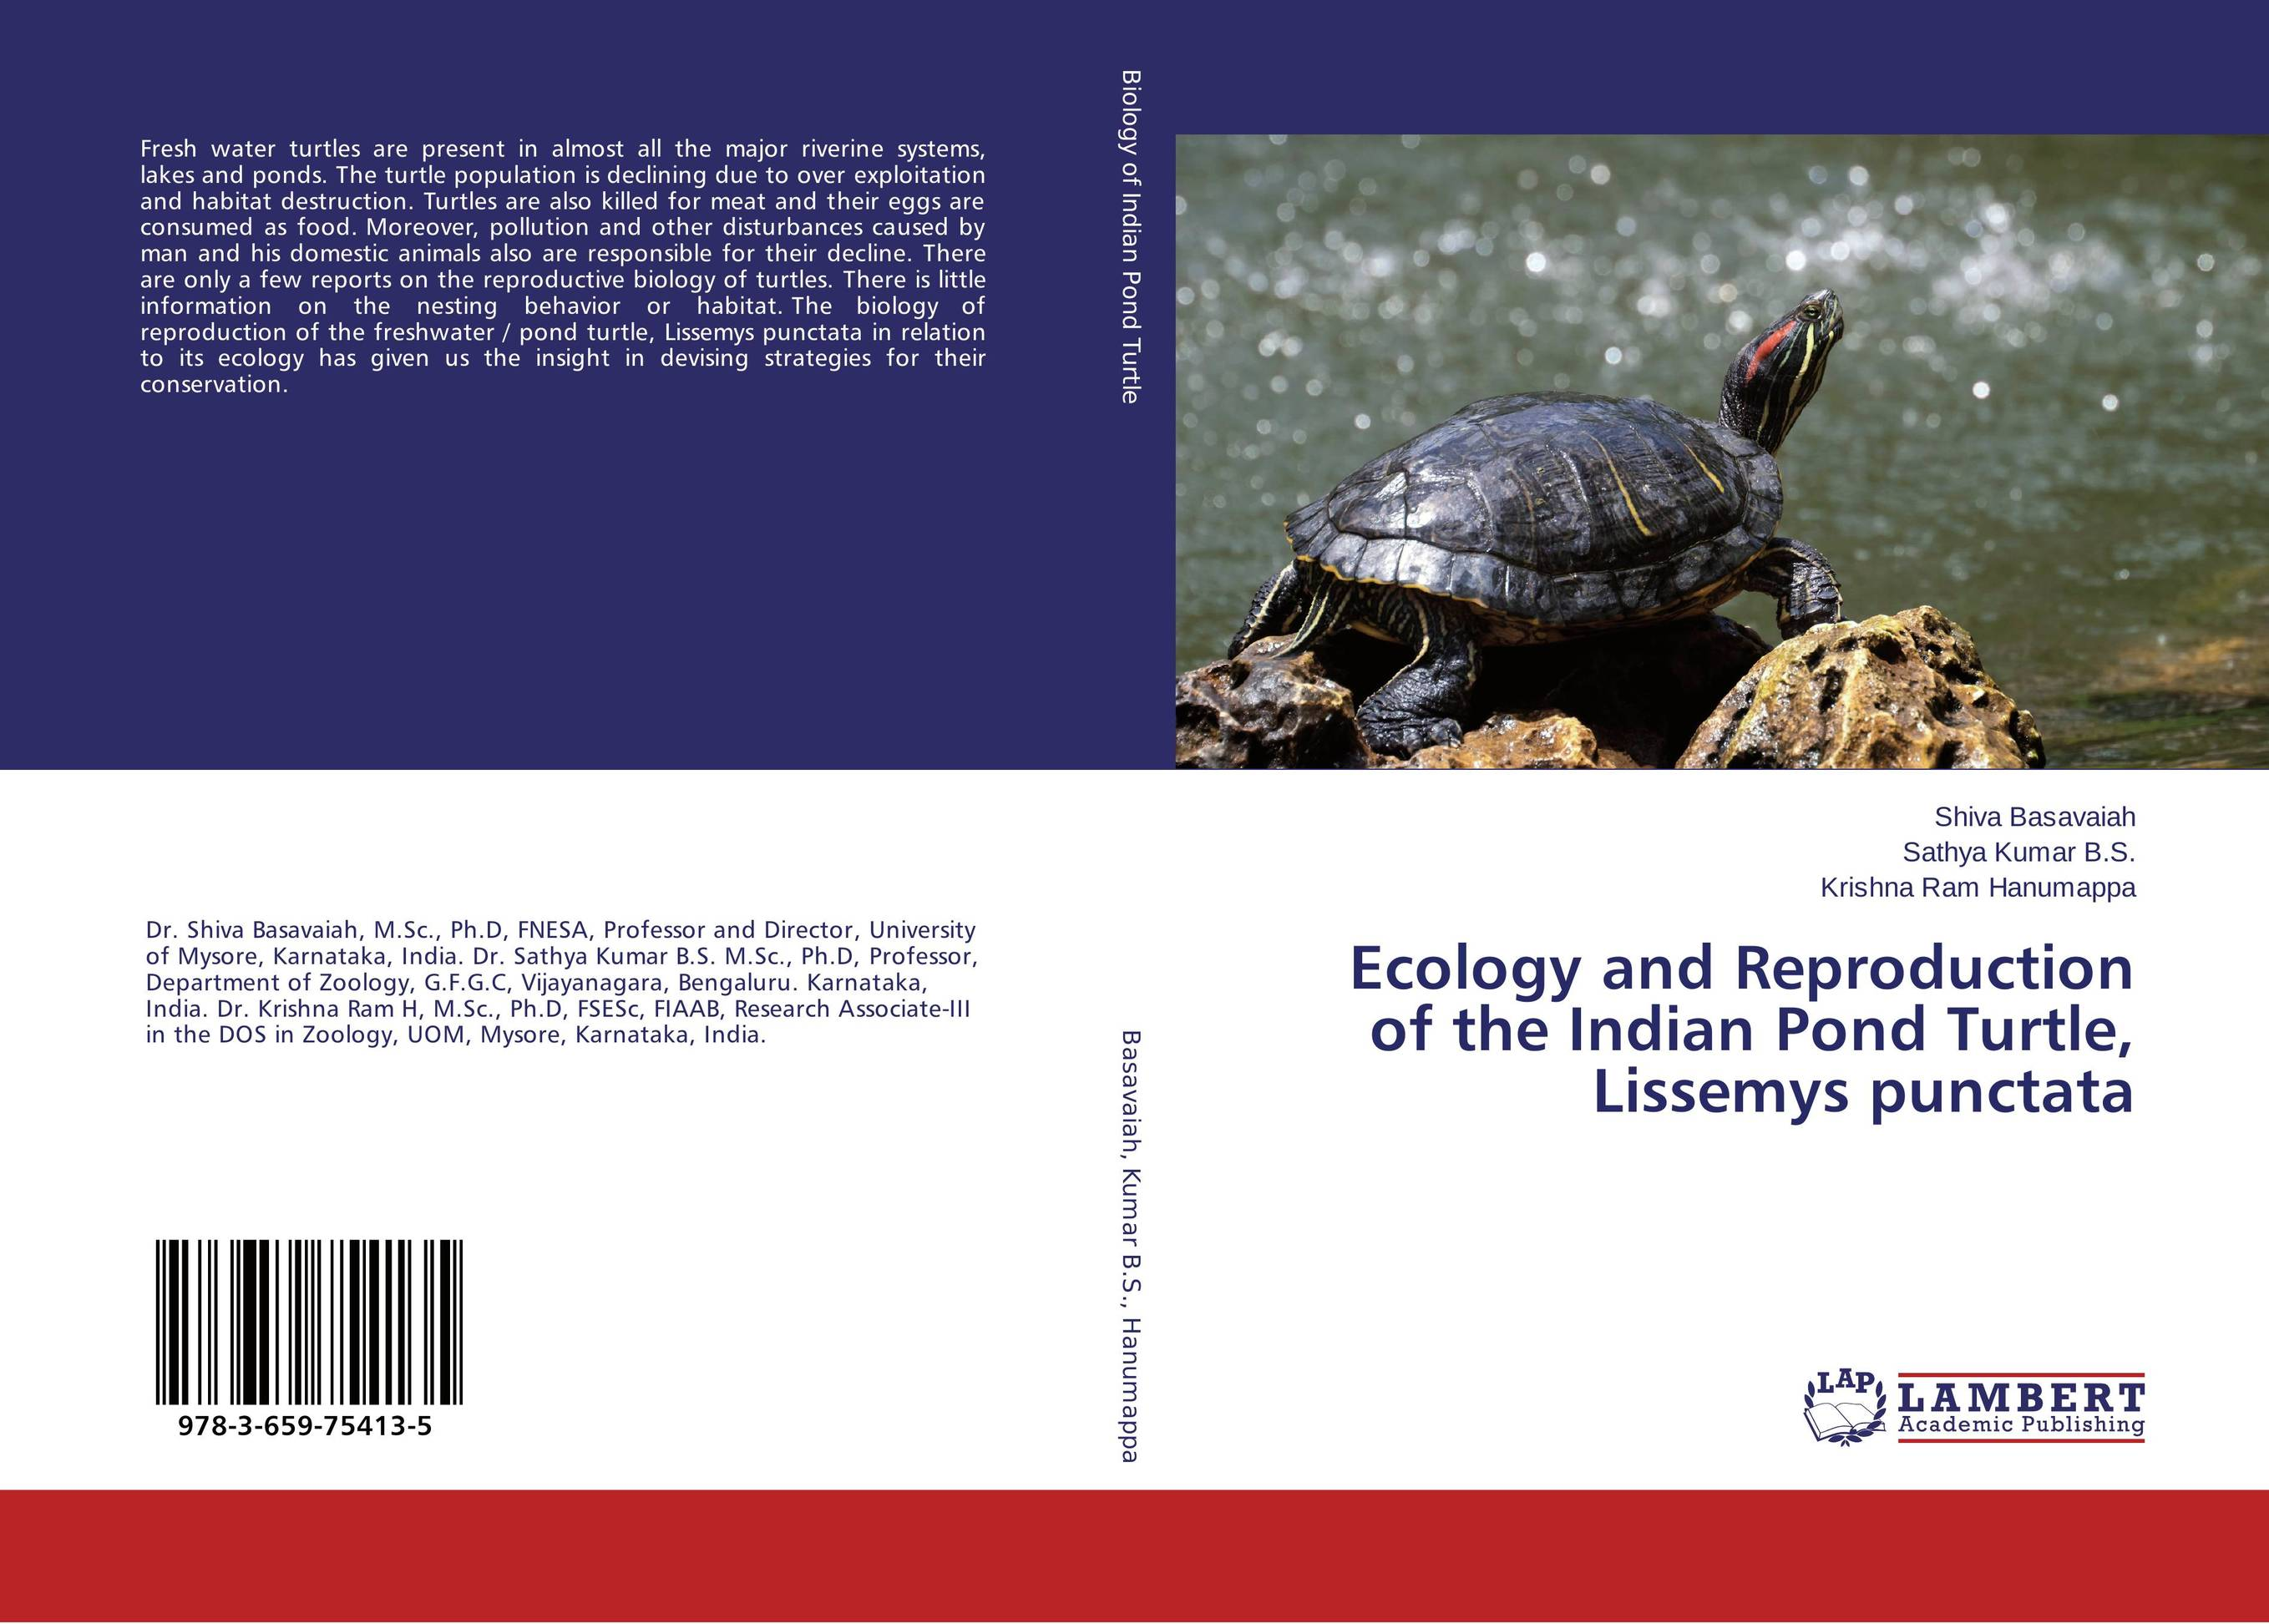 Ecology and Reproduction of the Indian Pond Turtle, Lissemys punctata bruce bridgeman the biology of behavior and mind